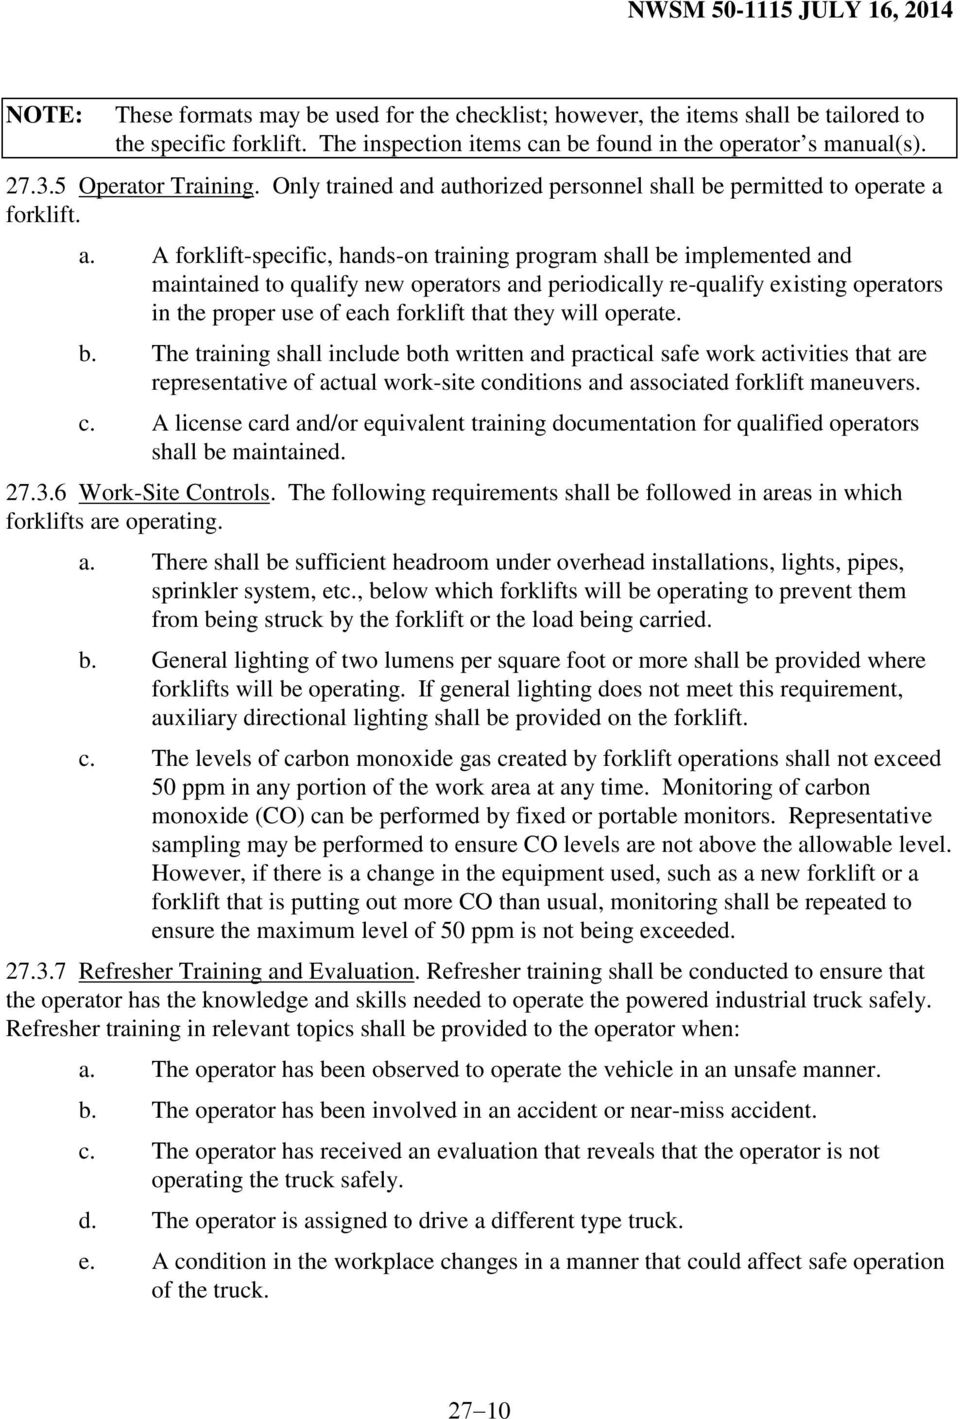 d authorized personnel shall be permitted to operate a forklift. a. A forklift-specific, hands-on training program shall be implemented and maintained to qualify new operators and periodically